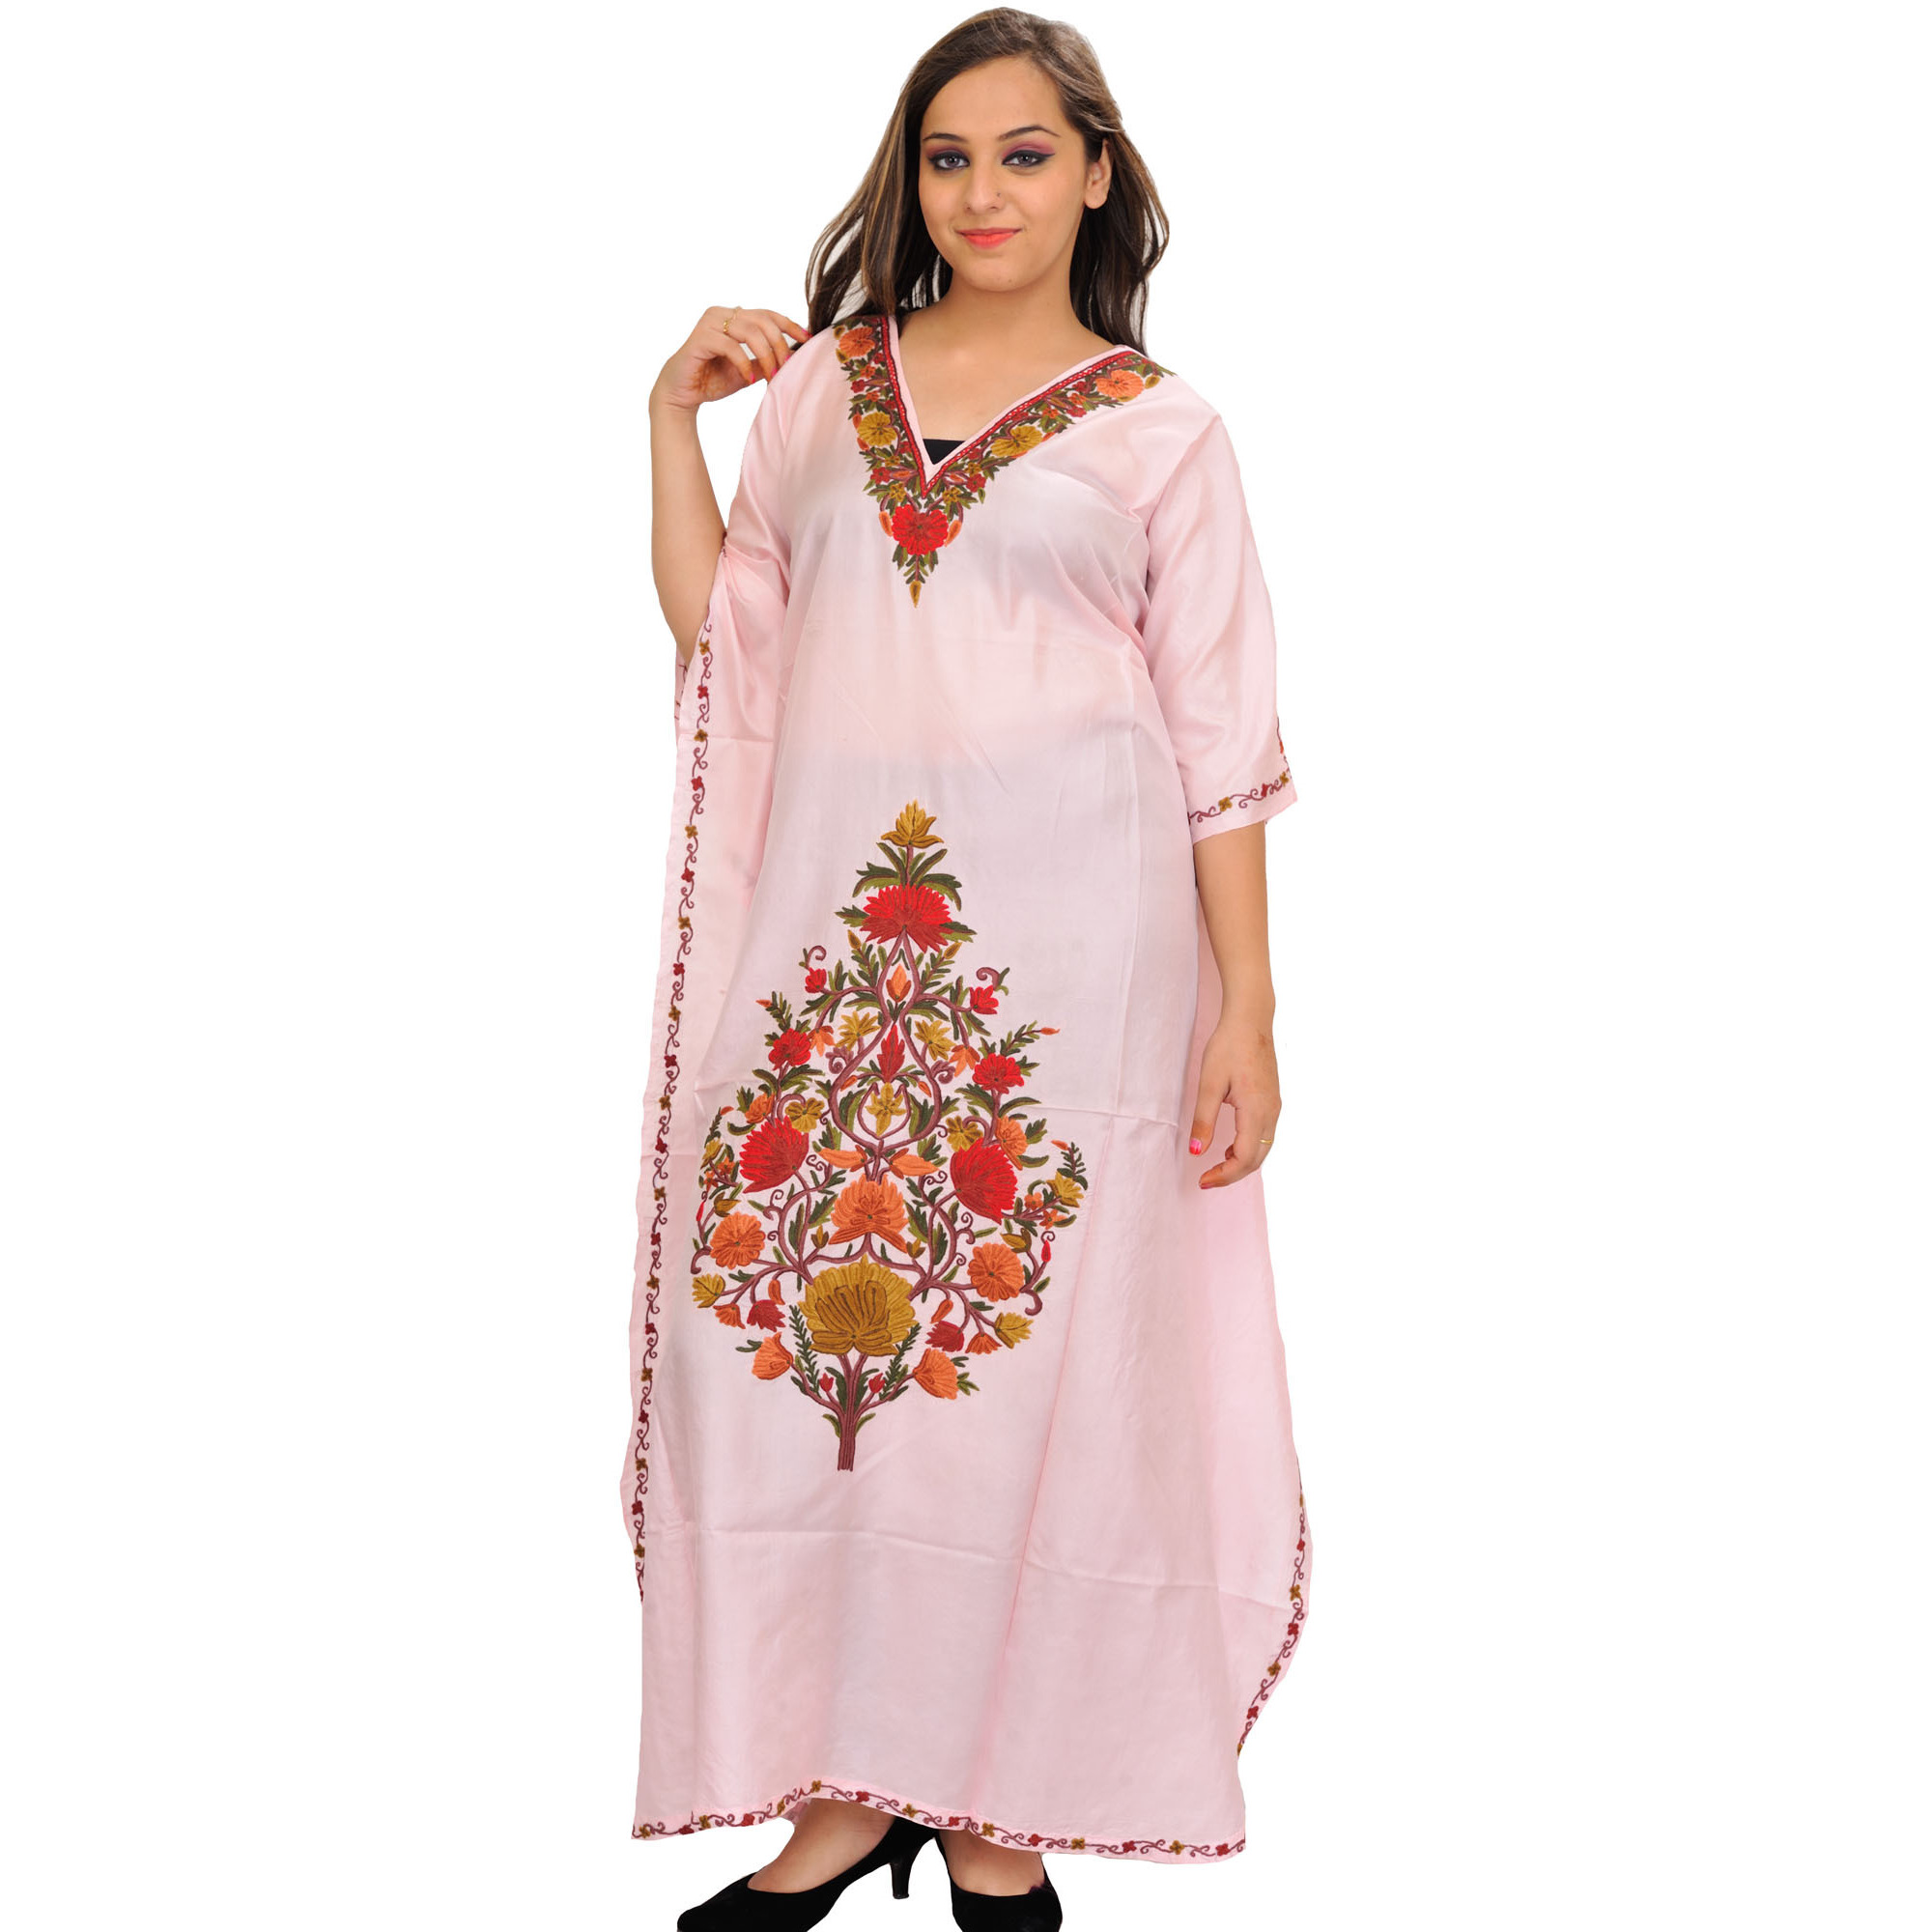 Strawberry-Cream Kaftan from Kashmir with Ari-Floral Embroidery by Hand